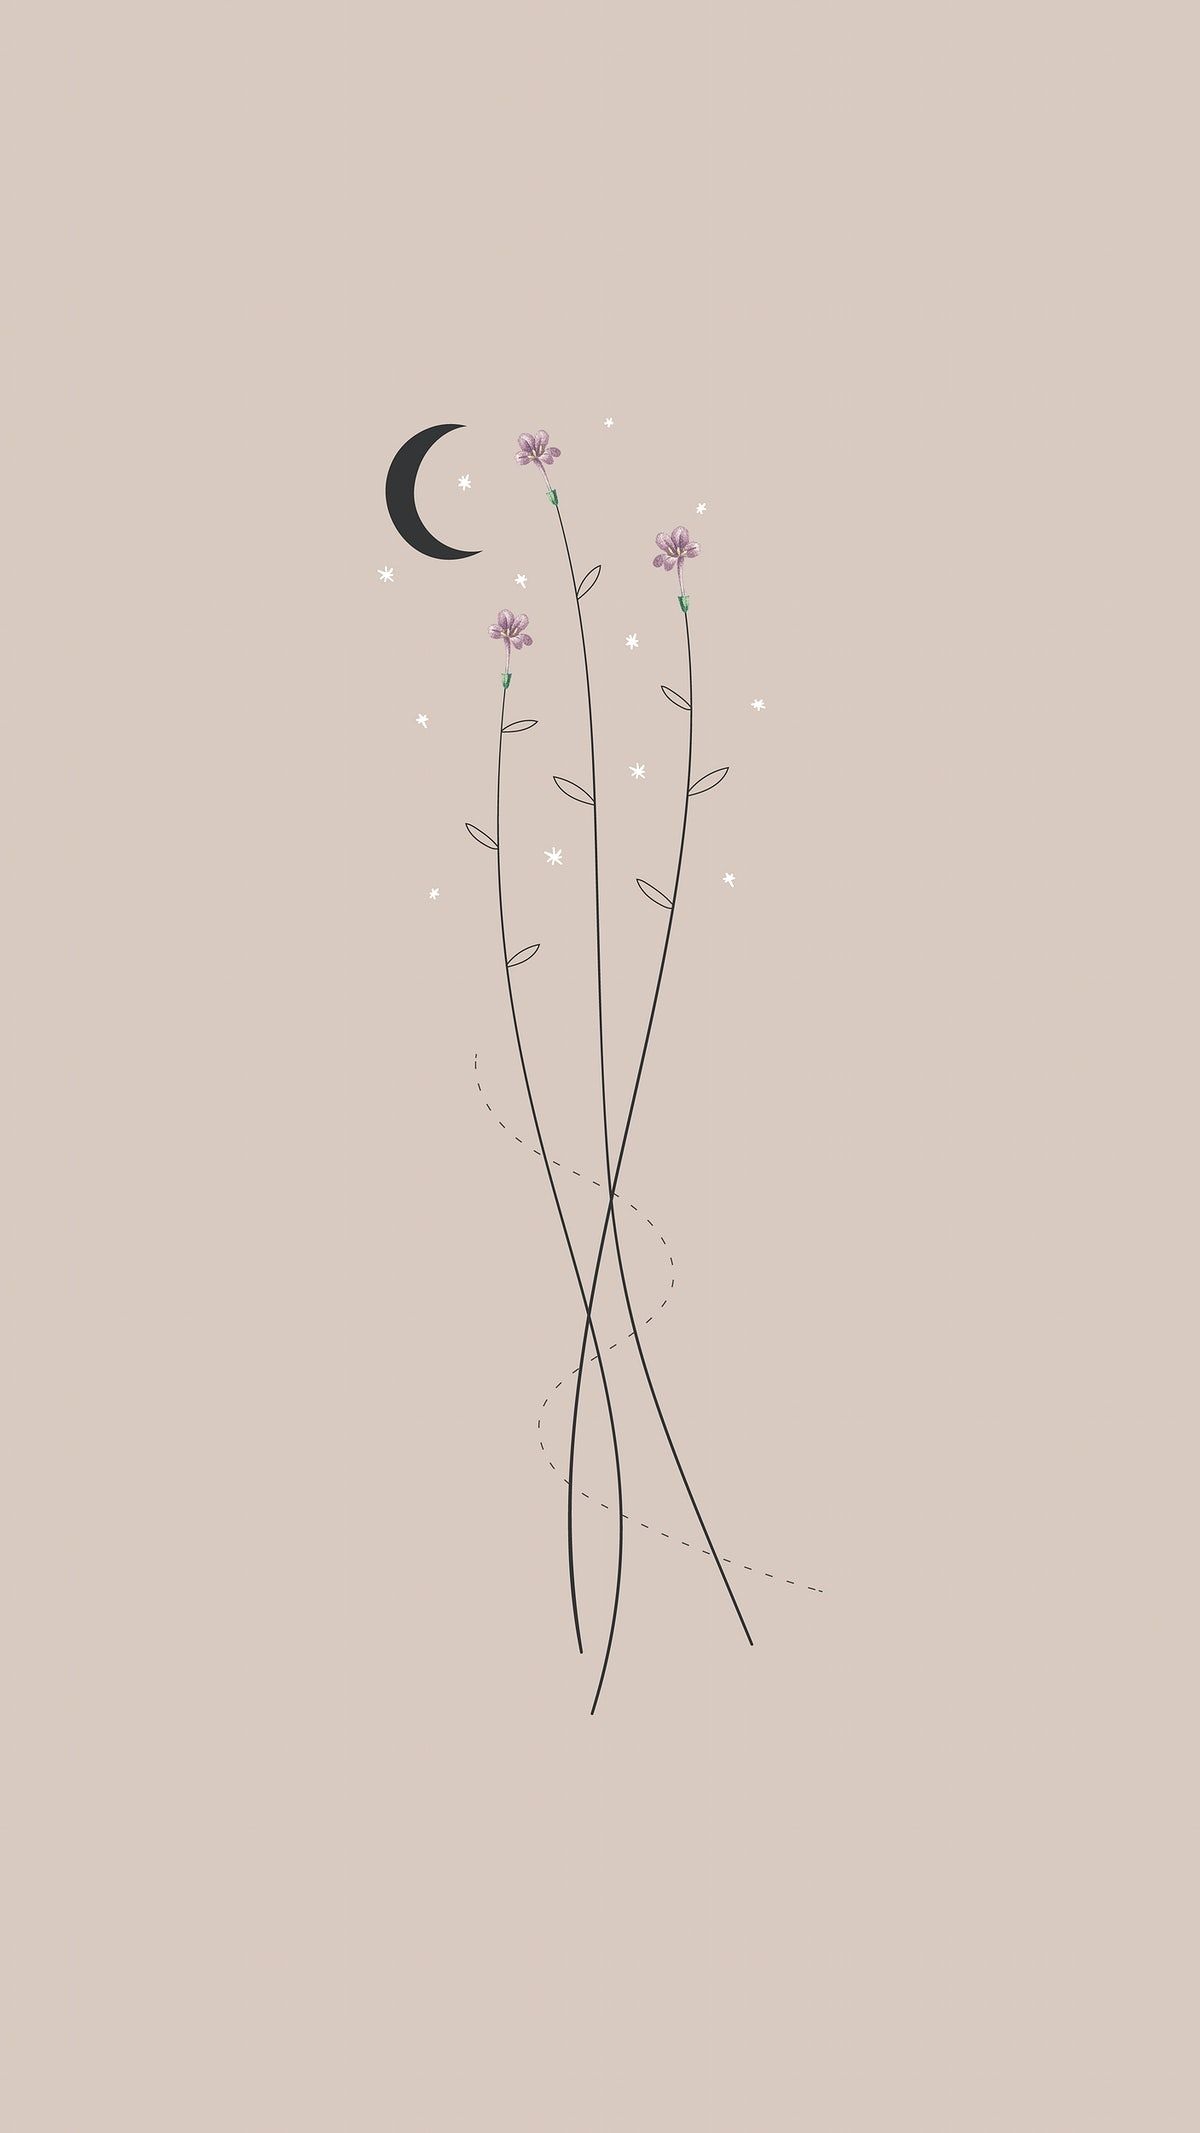 580+Download premium vector of Flowers and the moon mobile phone wallpaper vector by marinemynt about wallpaper, boho, moon, iphone wallpaper, and bohemian 1227217